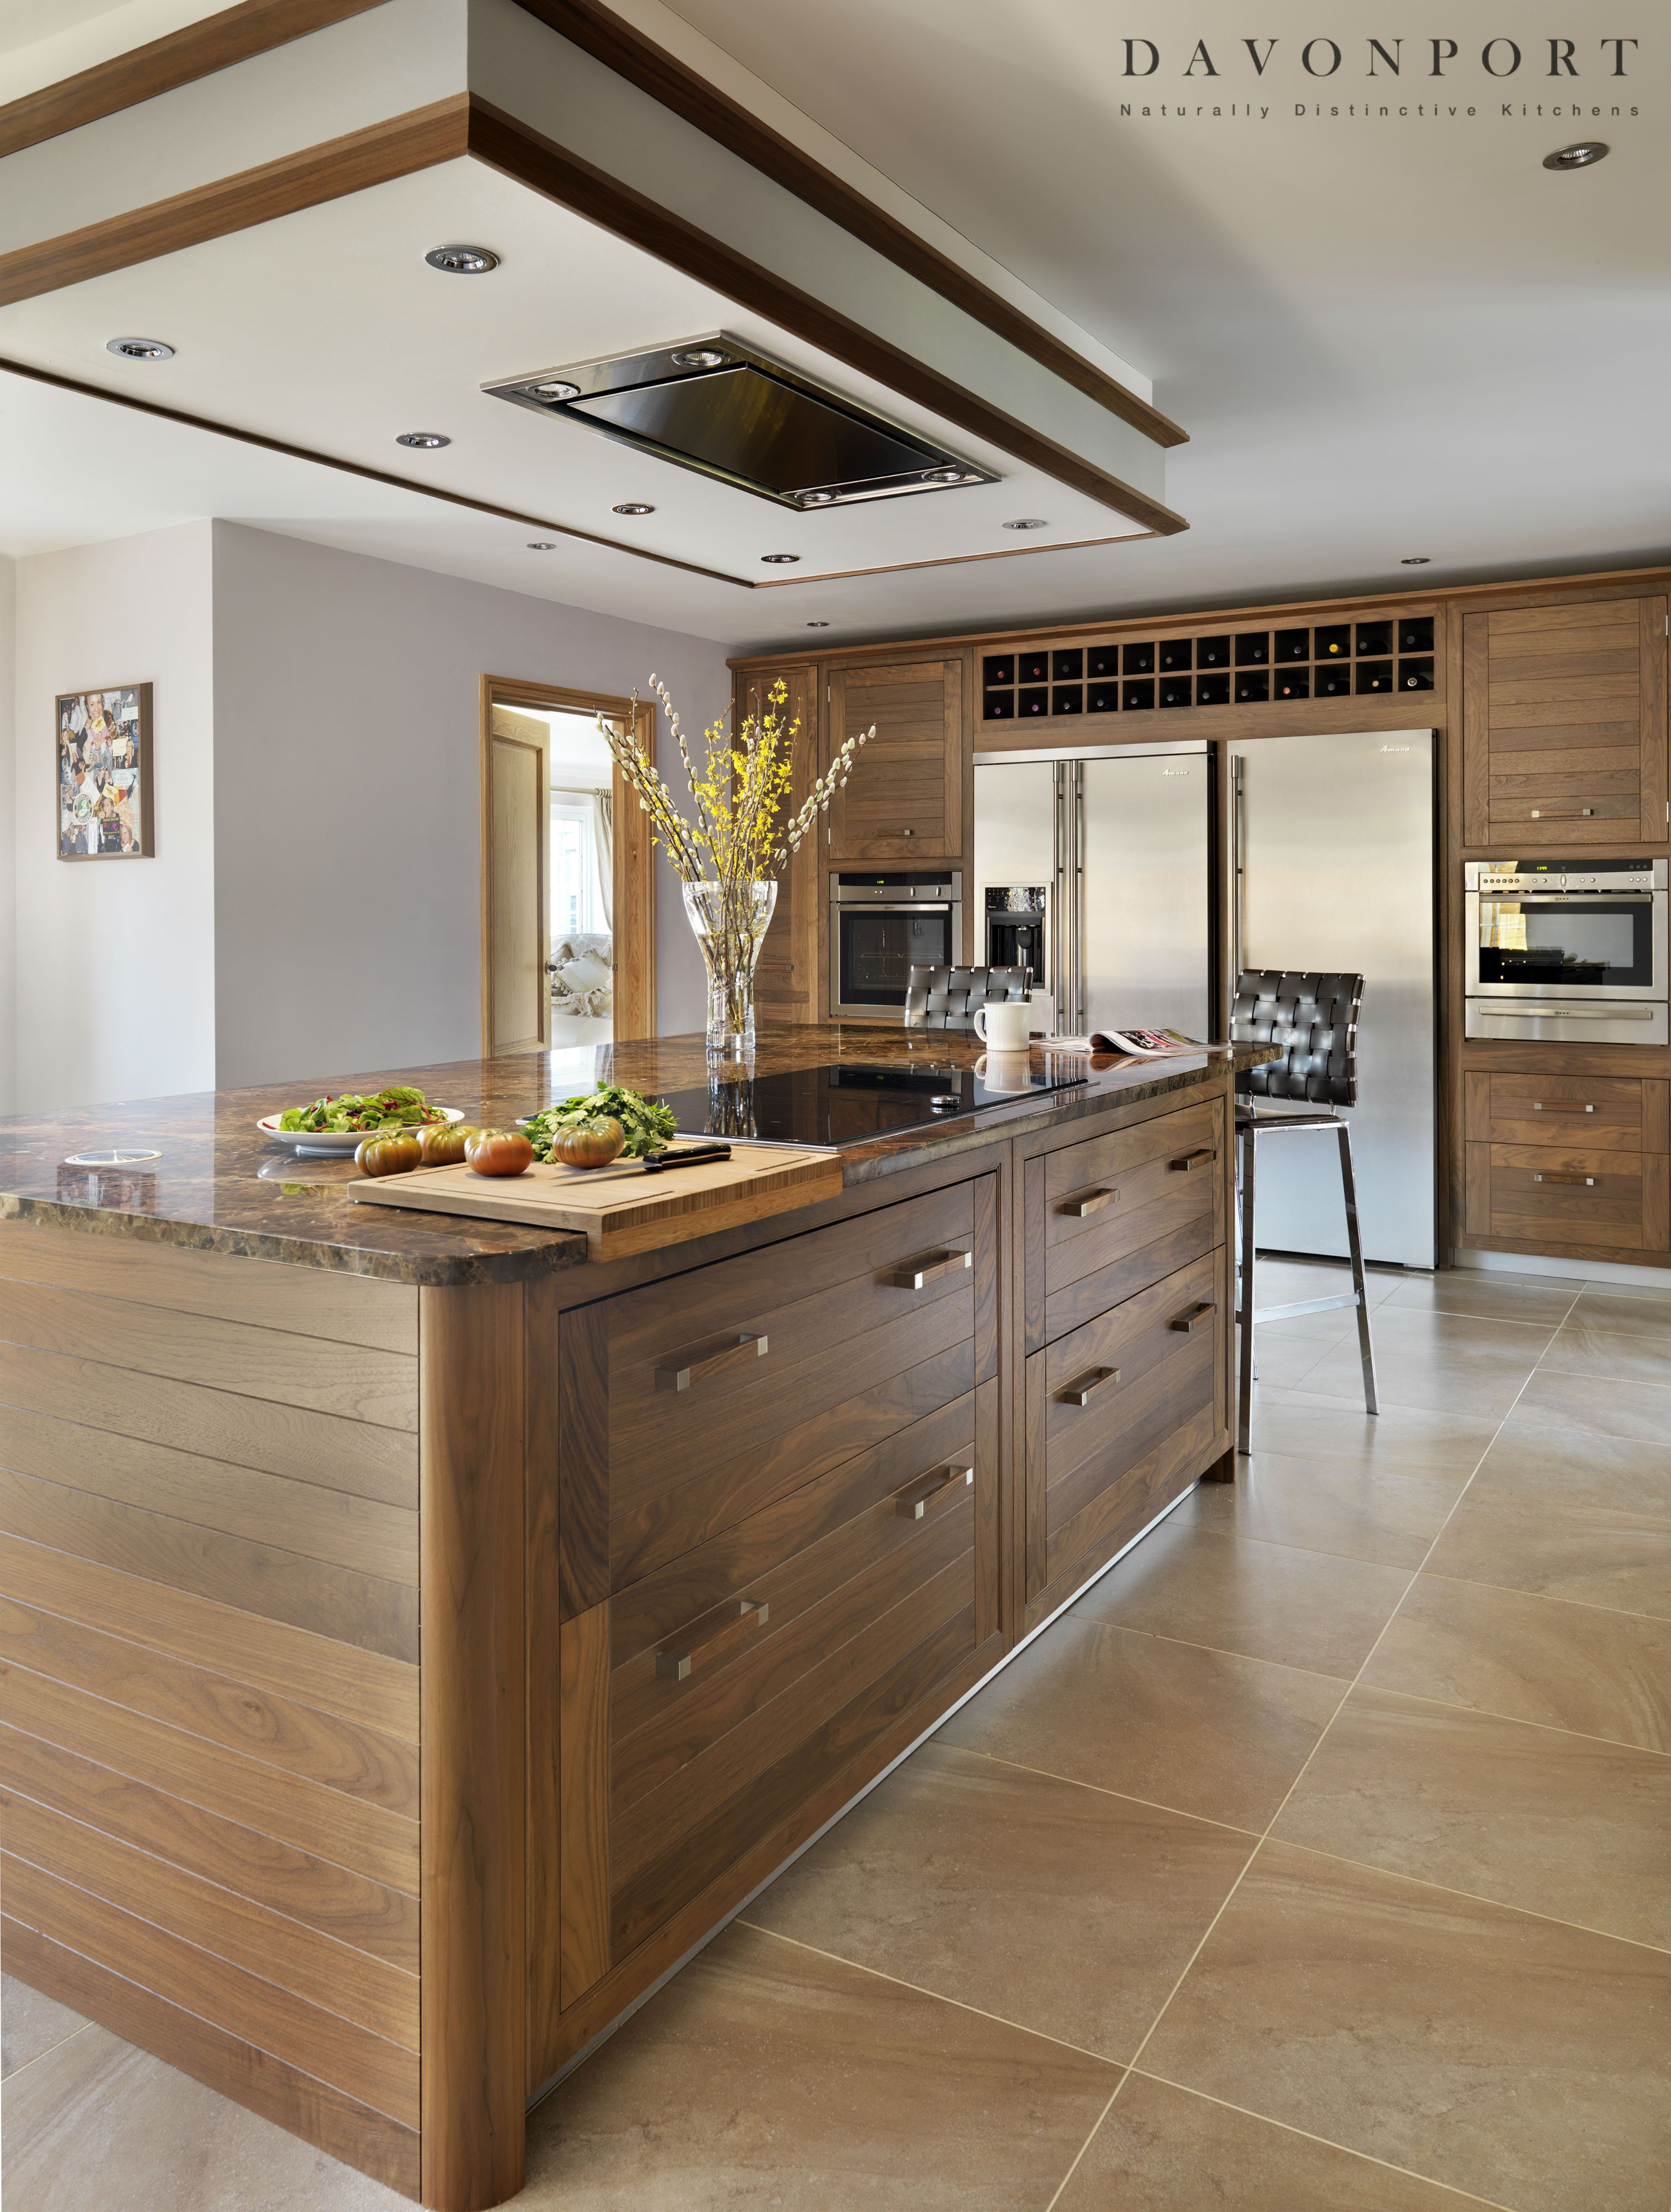 The kitchen island in this design is used as a practical cooking ...